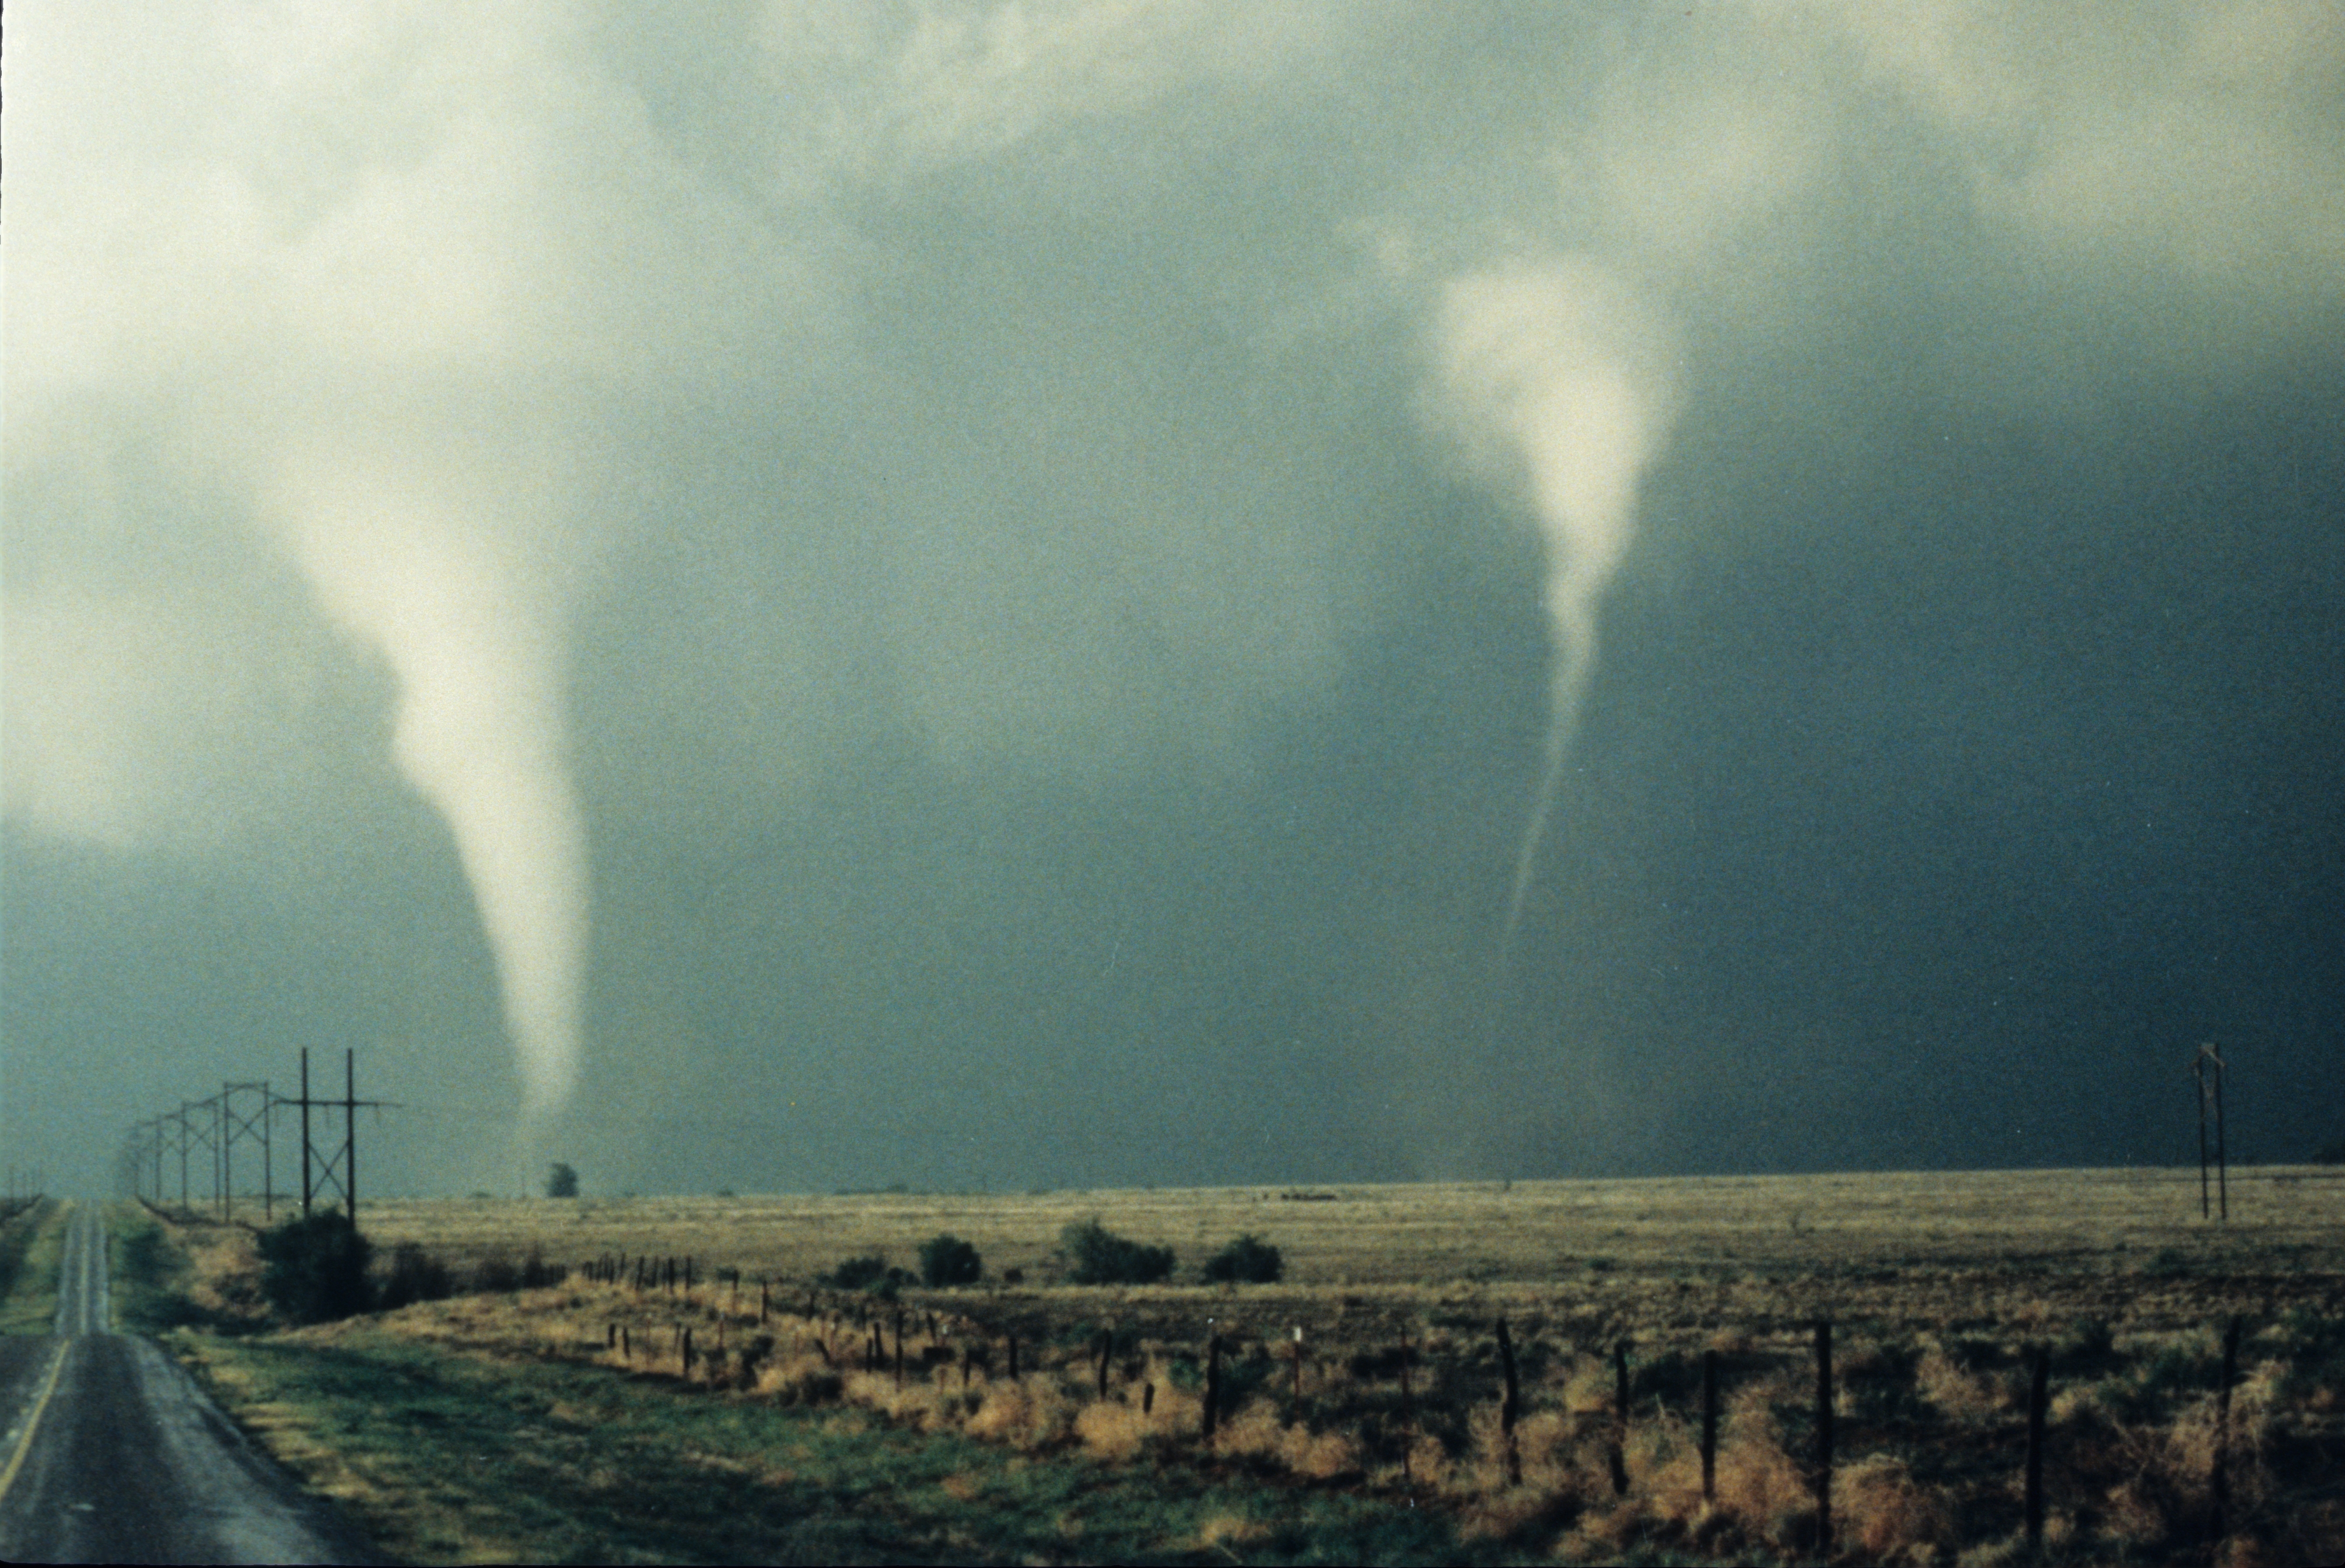 a study on tornadoes On the evening of may 25, 1955, an f5 tornado touched the ground near the kansas-oklahoma state line as it proceeded northward, it took a northeast twist that put it on a direct collision course with the small kansas town of udall.